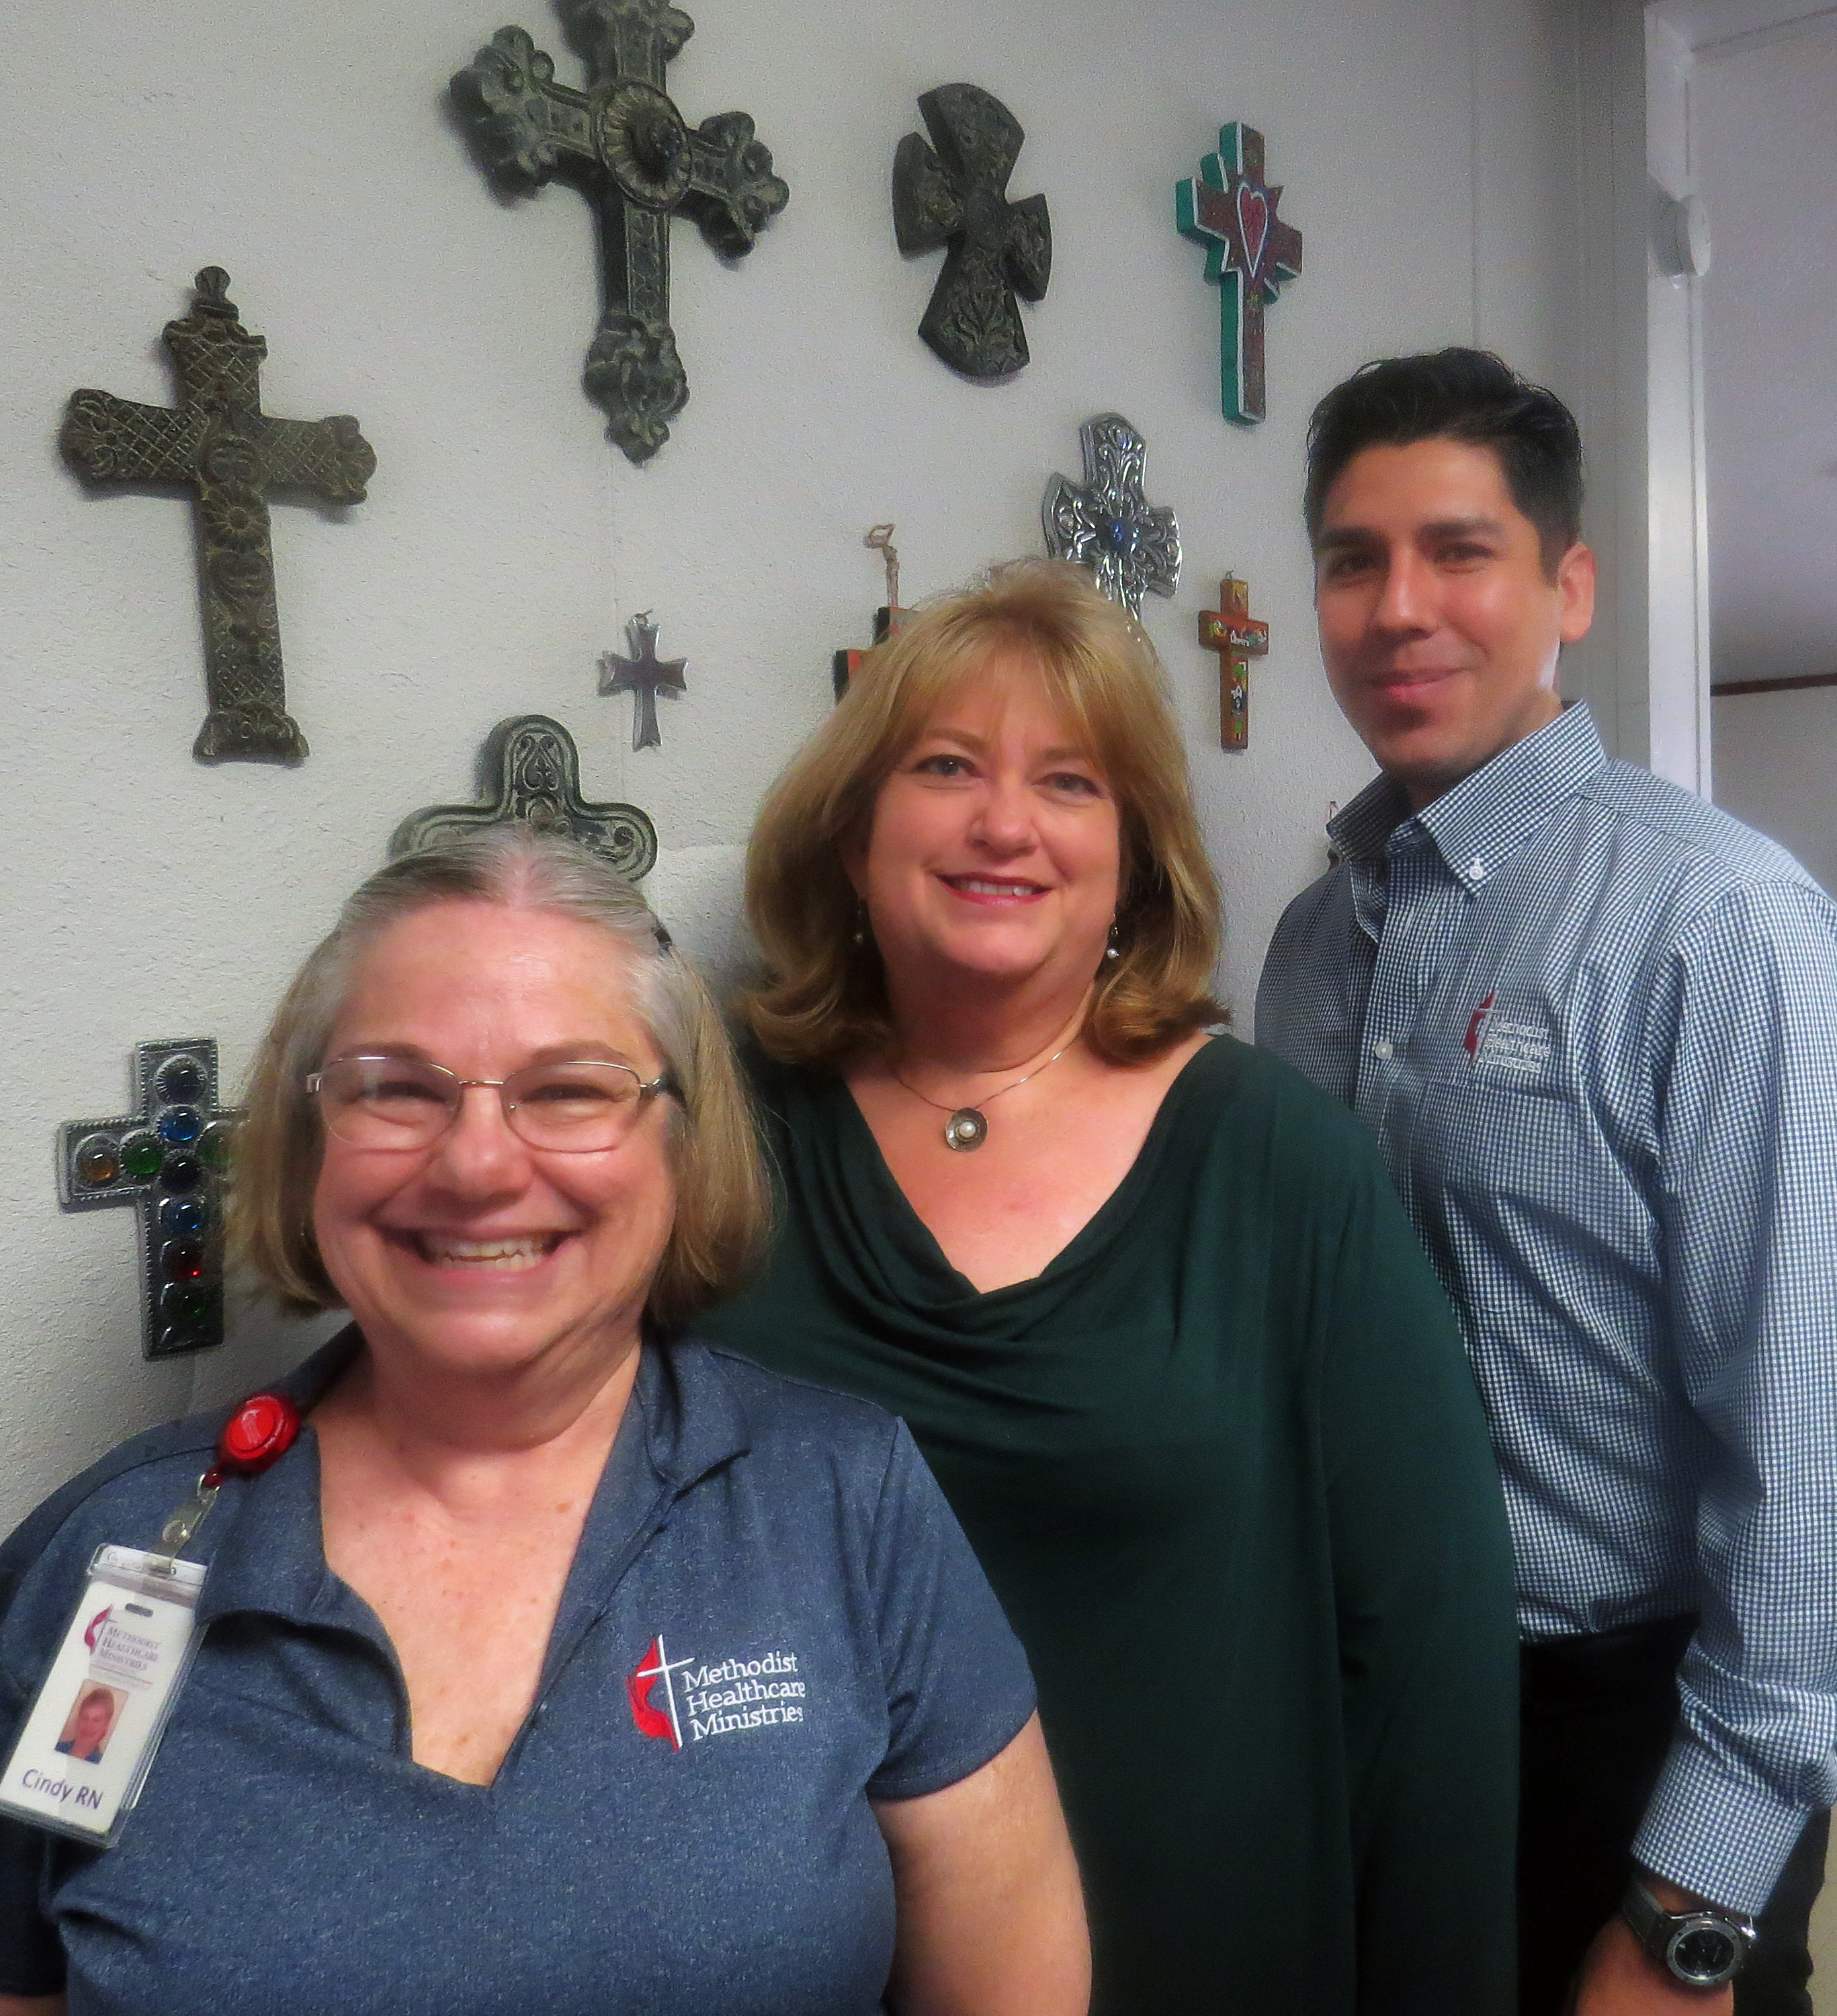 Cindy Bishop (left) stands with the Rev. Michelle Vernone and Robert Chapa. Vernone is pastor of First United Methodist Church in Edinburg, Texas. Bishop and Chapa are based there and work for Methodist Healthcare Ministries of South Texas. Bishop is a Wesley Nurse, doing public health outreach, and Chapa is a counselor. Photo by Sam Hodges, UMNS.